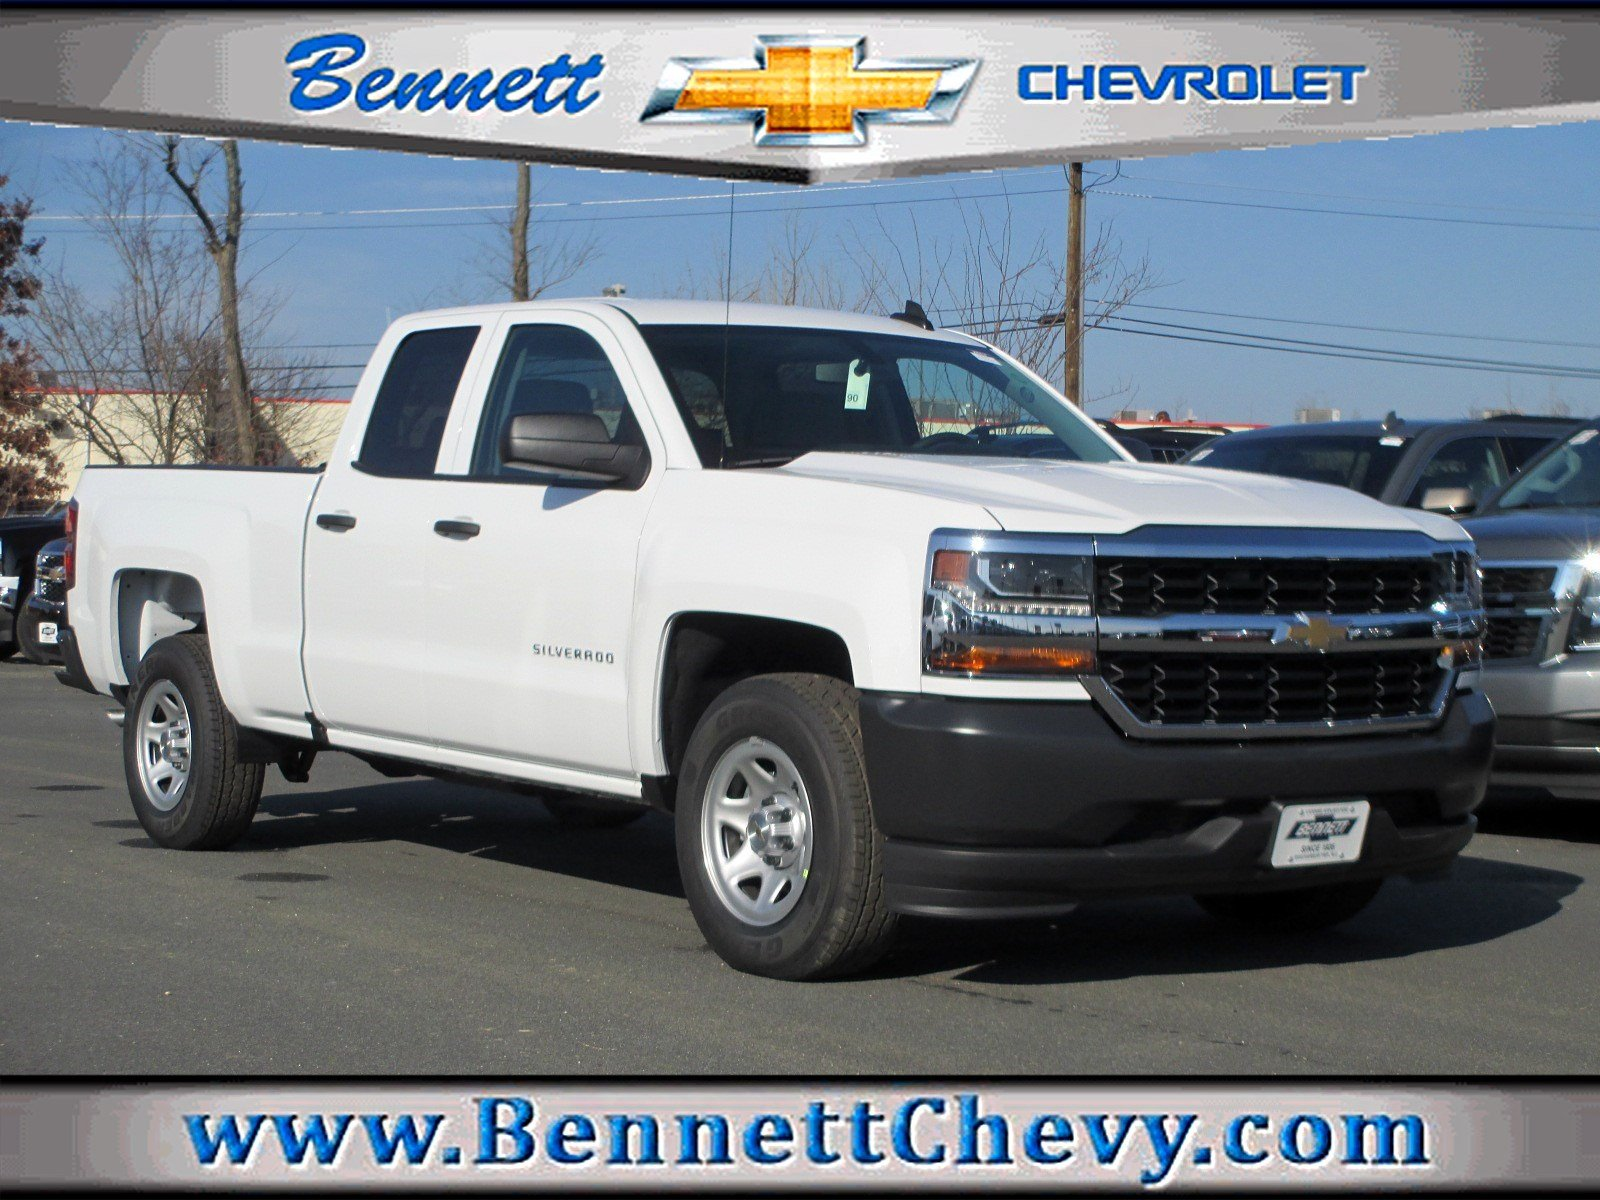 2019 chevrolet silverado 1500 pickup trucks chevrolet. Black Bedroom Furniture Sets. Home Design Ideas